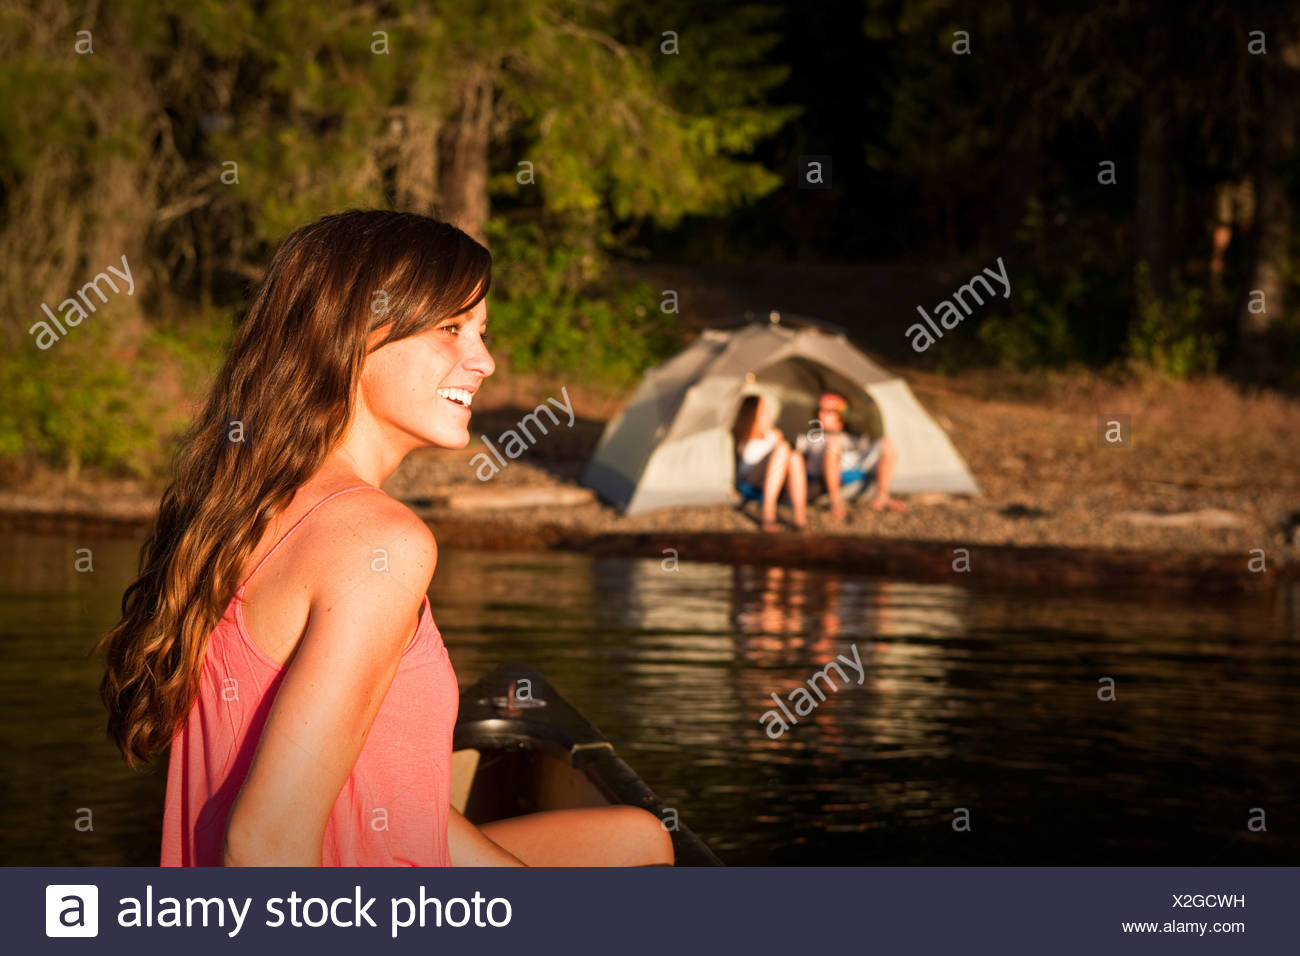 A happy young woman smiles while canoeing on a camping trip on a lake in Idaho. - Stock Image